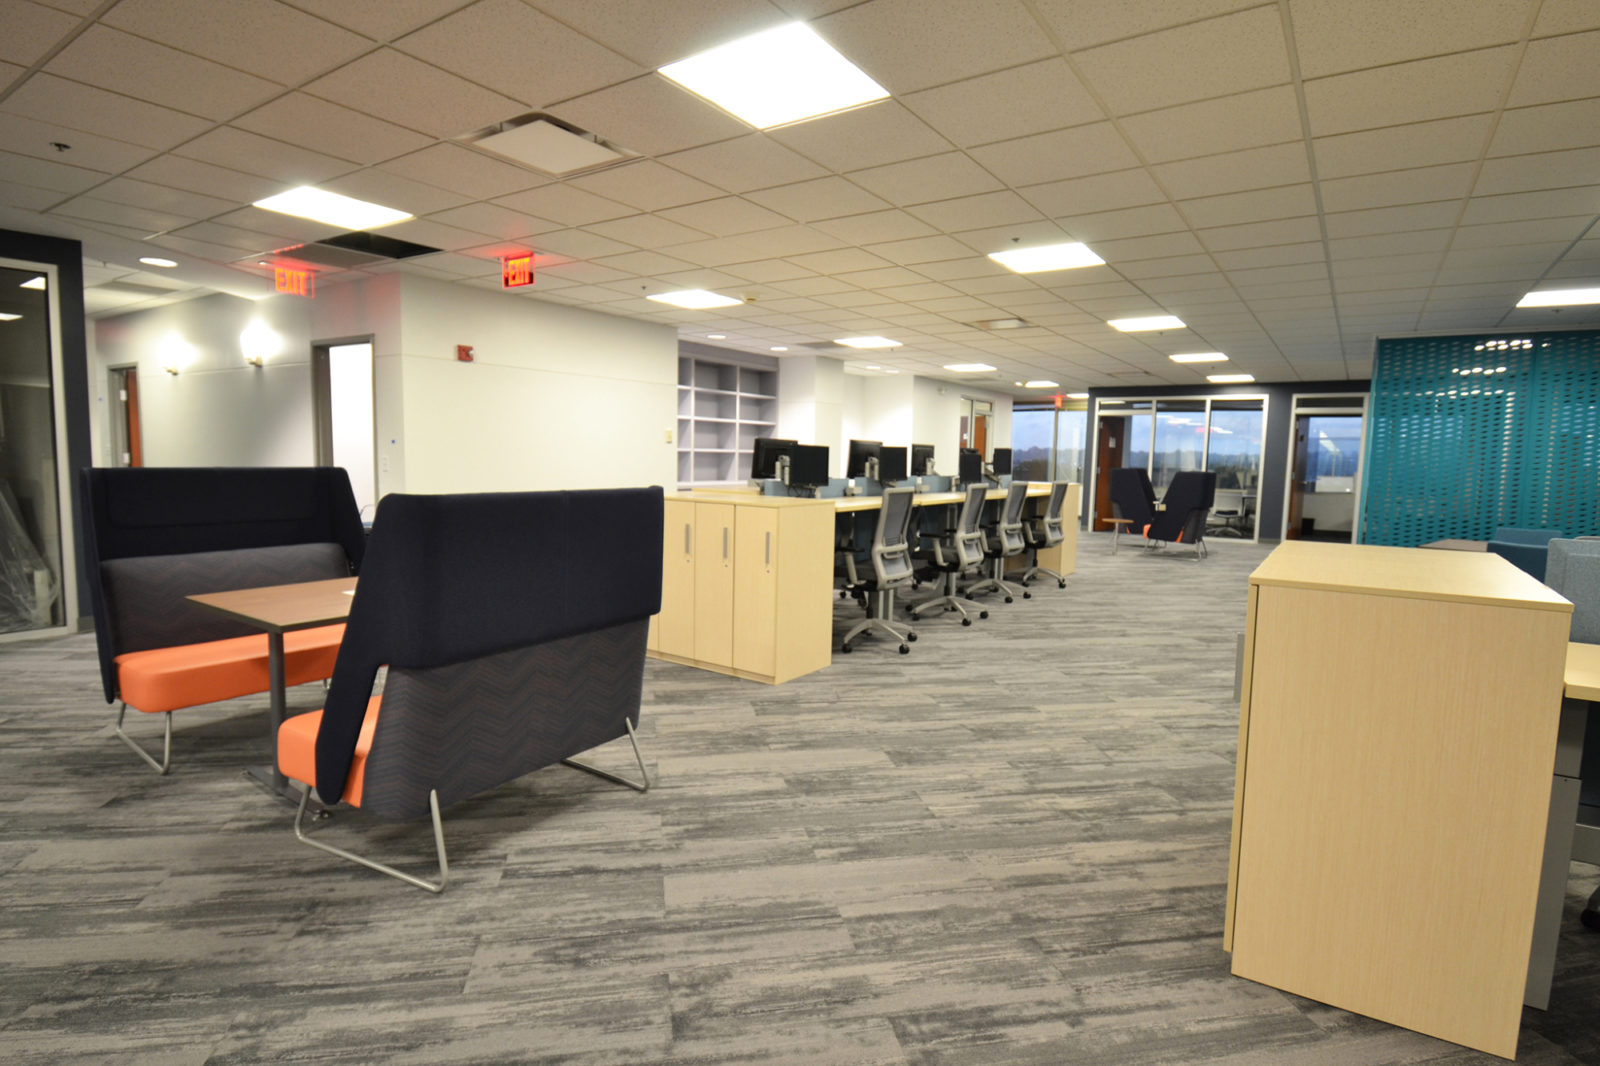 Prof. Services Firm Project Highlight: back view of booth tables and desk space